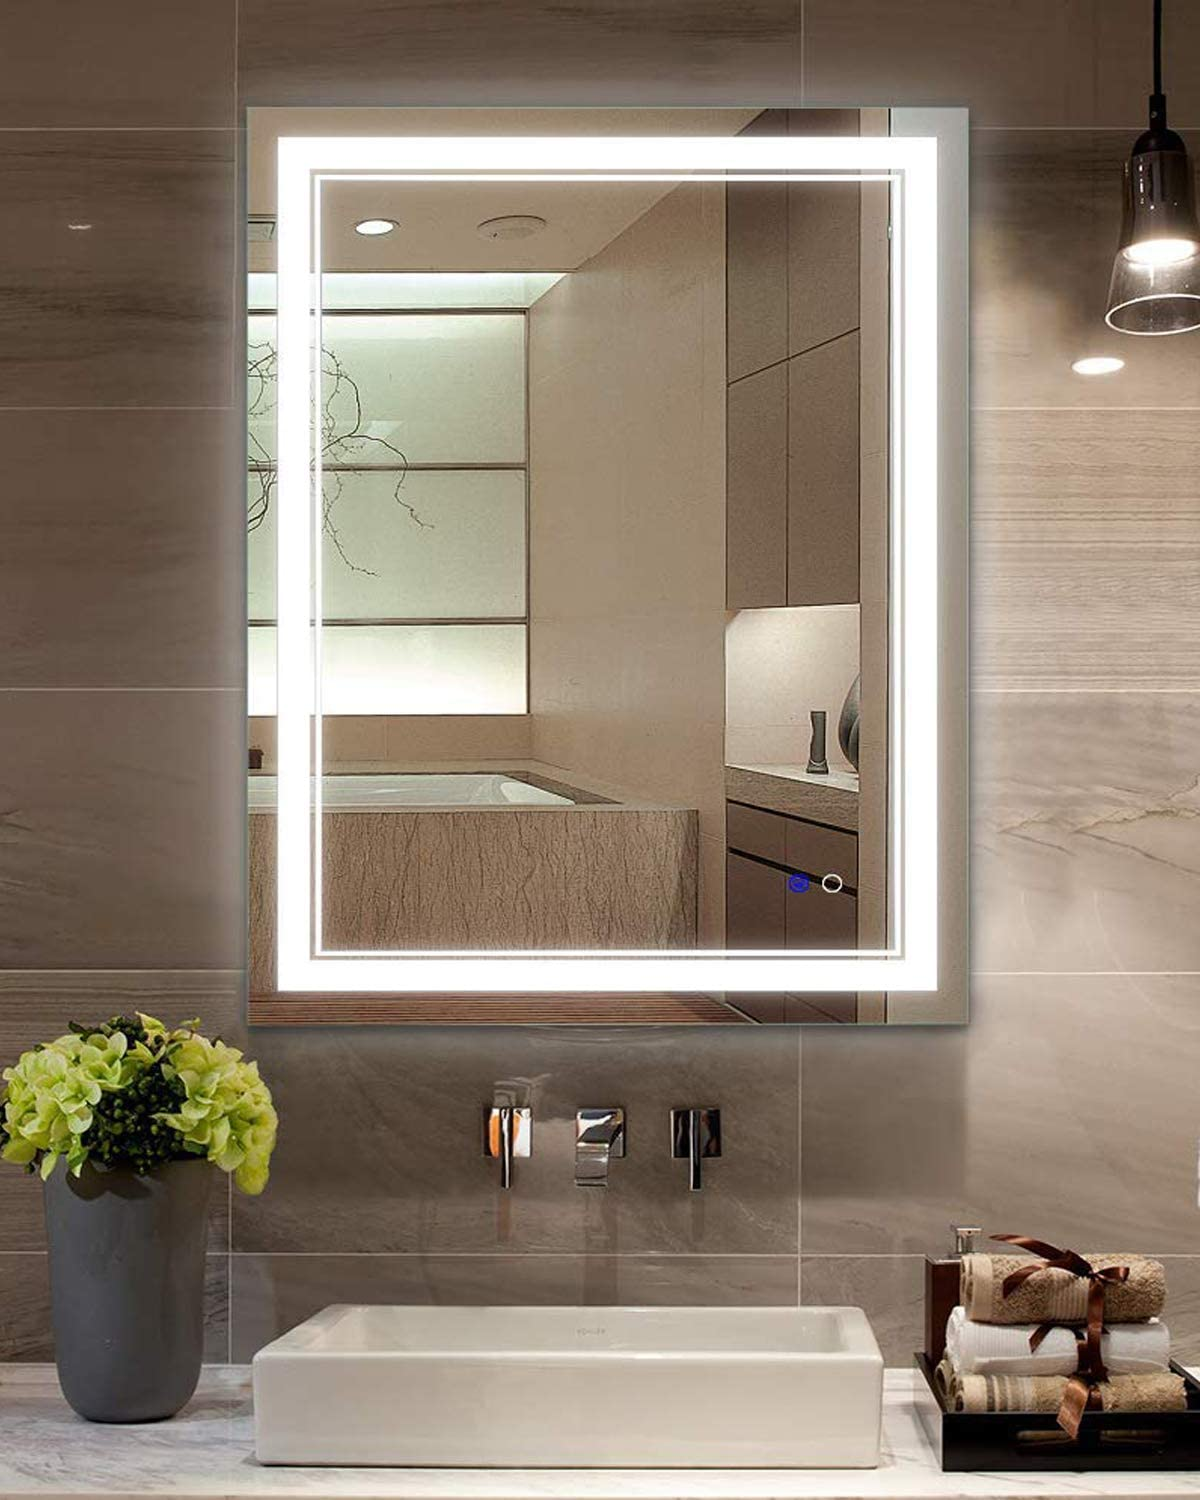 Keonjinn 14 x 14 Inch LED Makeup Bathroom Mirror Anti-Fog Dimmable